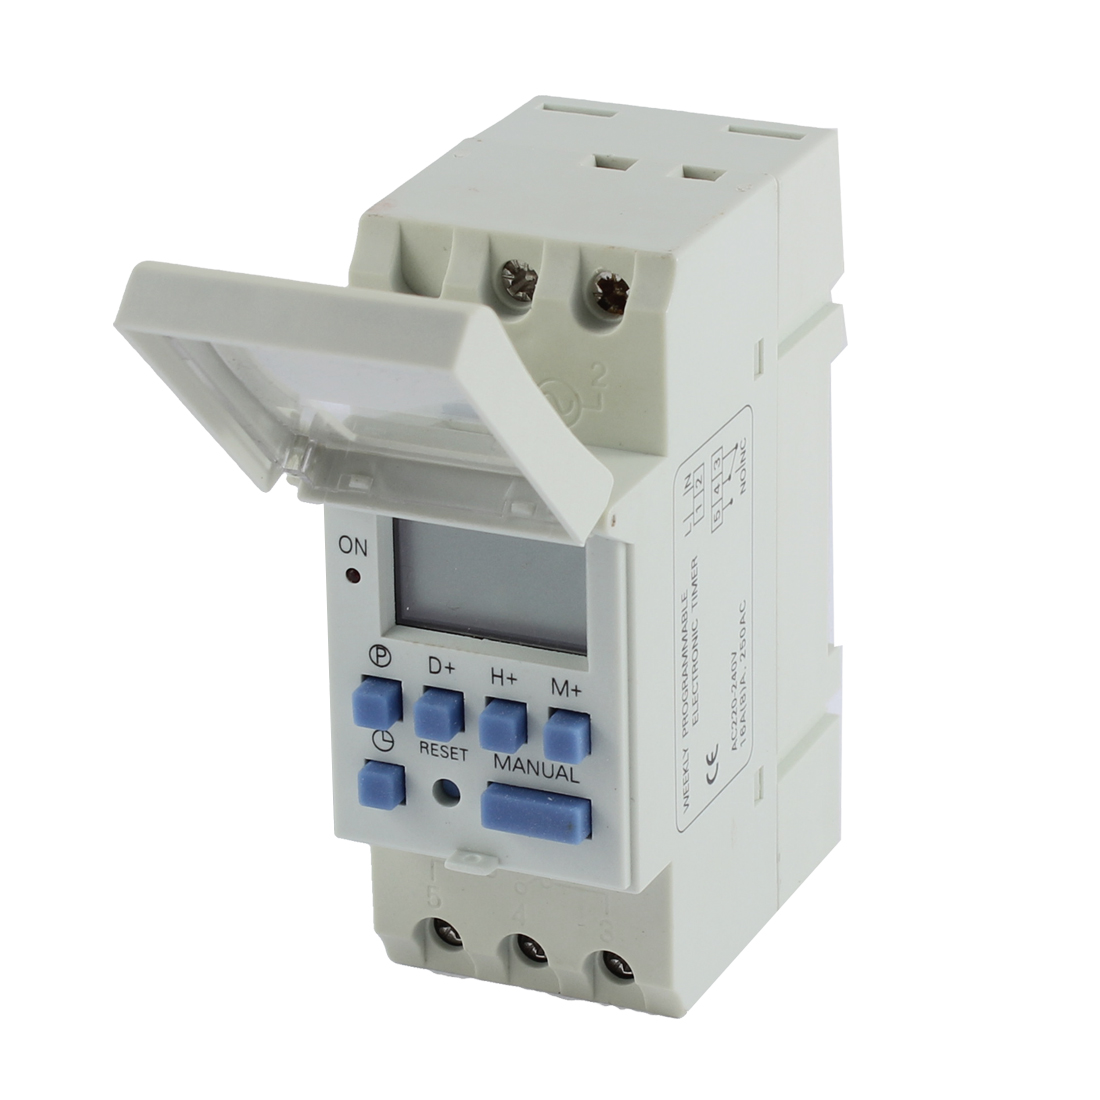 DIN Rail Mount Digital LCD Weekly Programmable Electronic Relay Timer AHC15A AC220V-240V